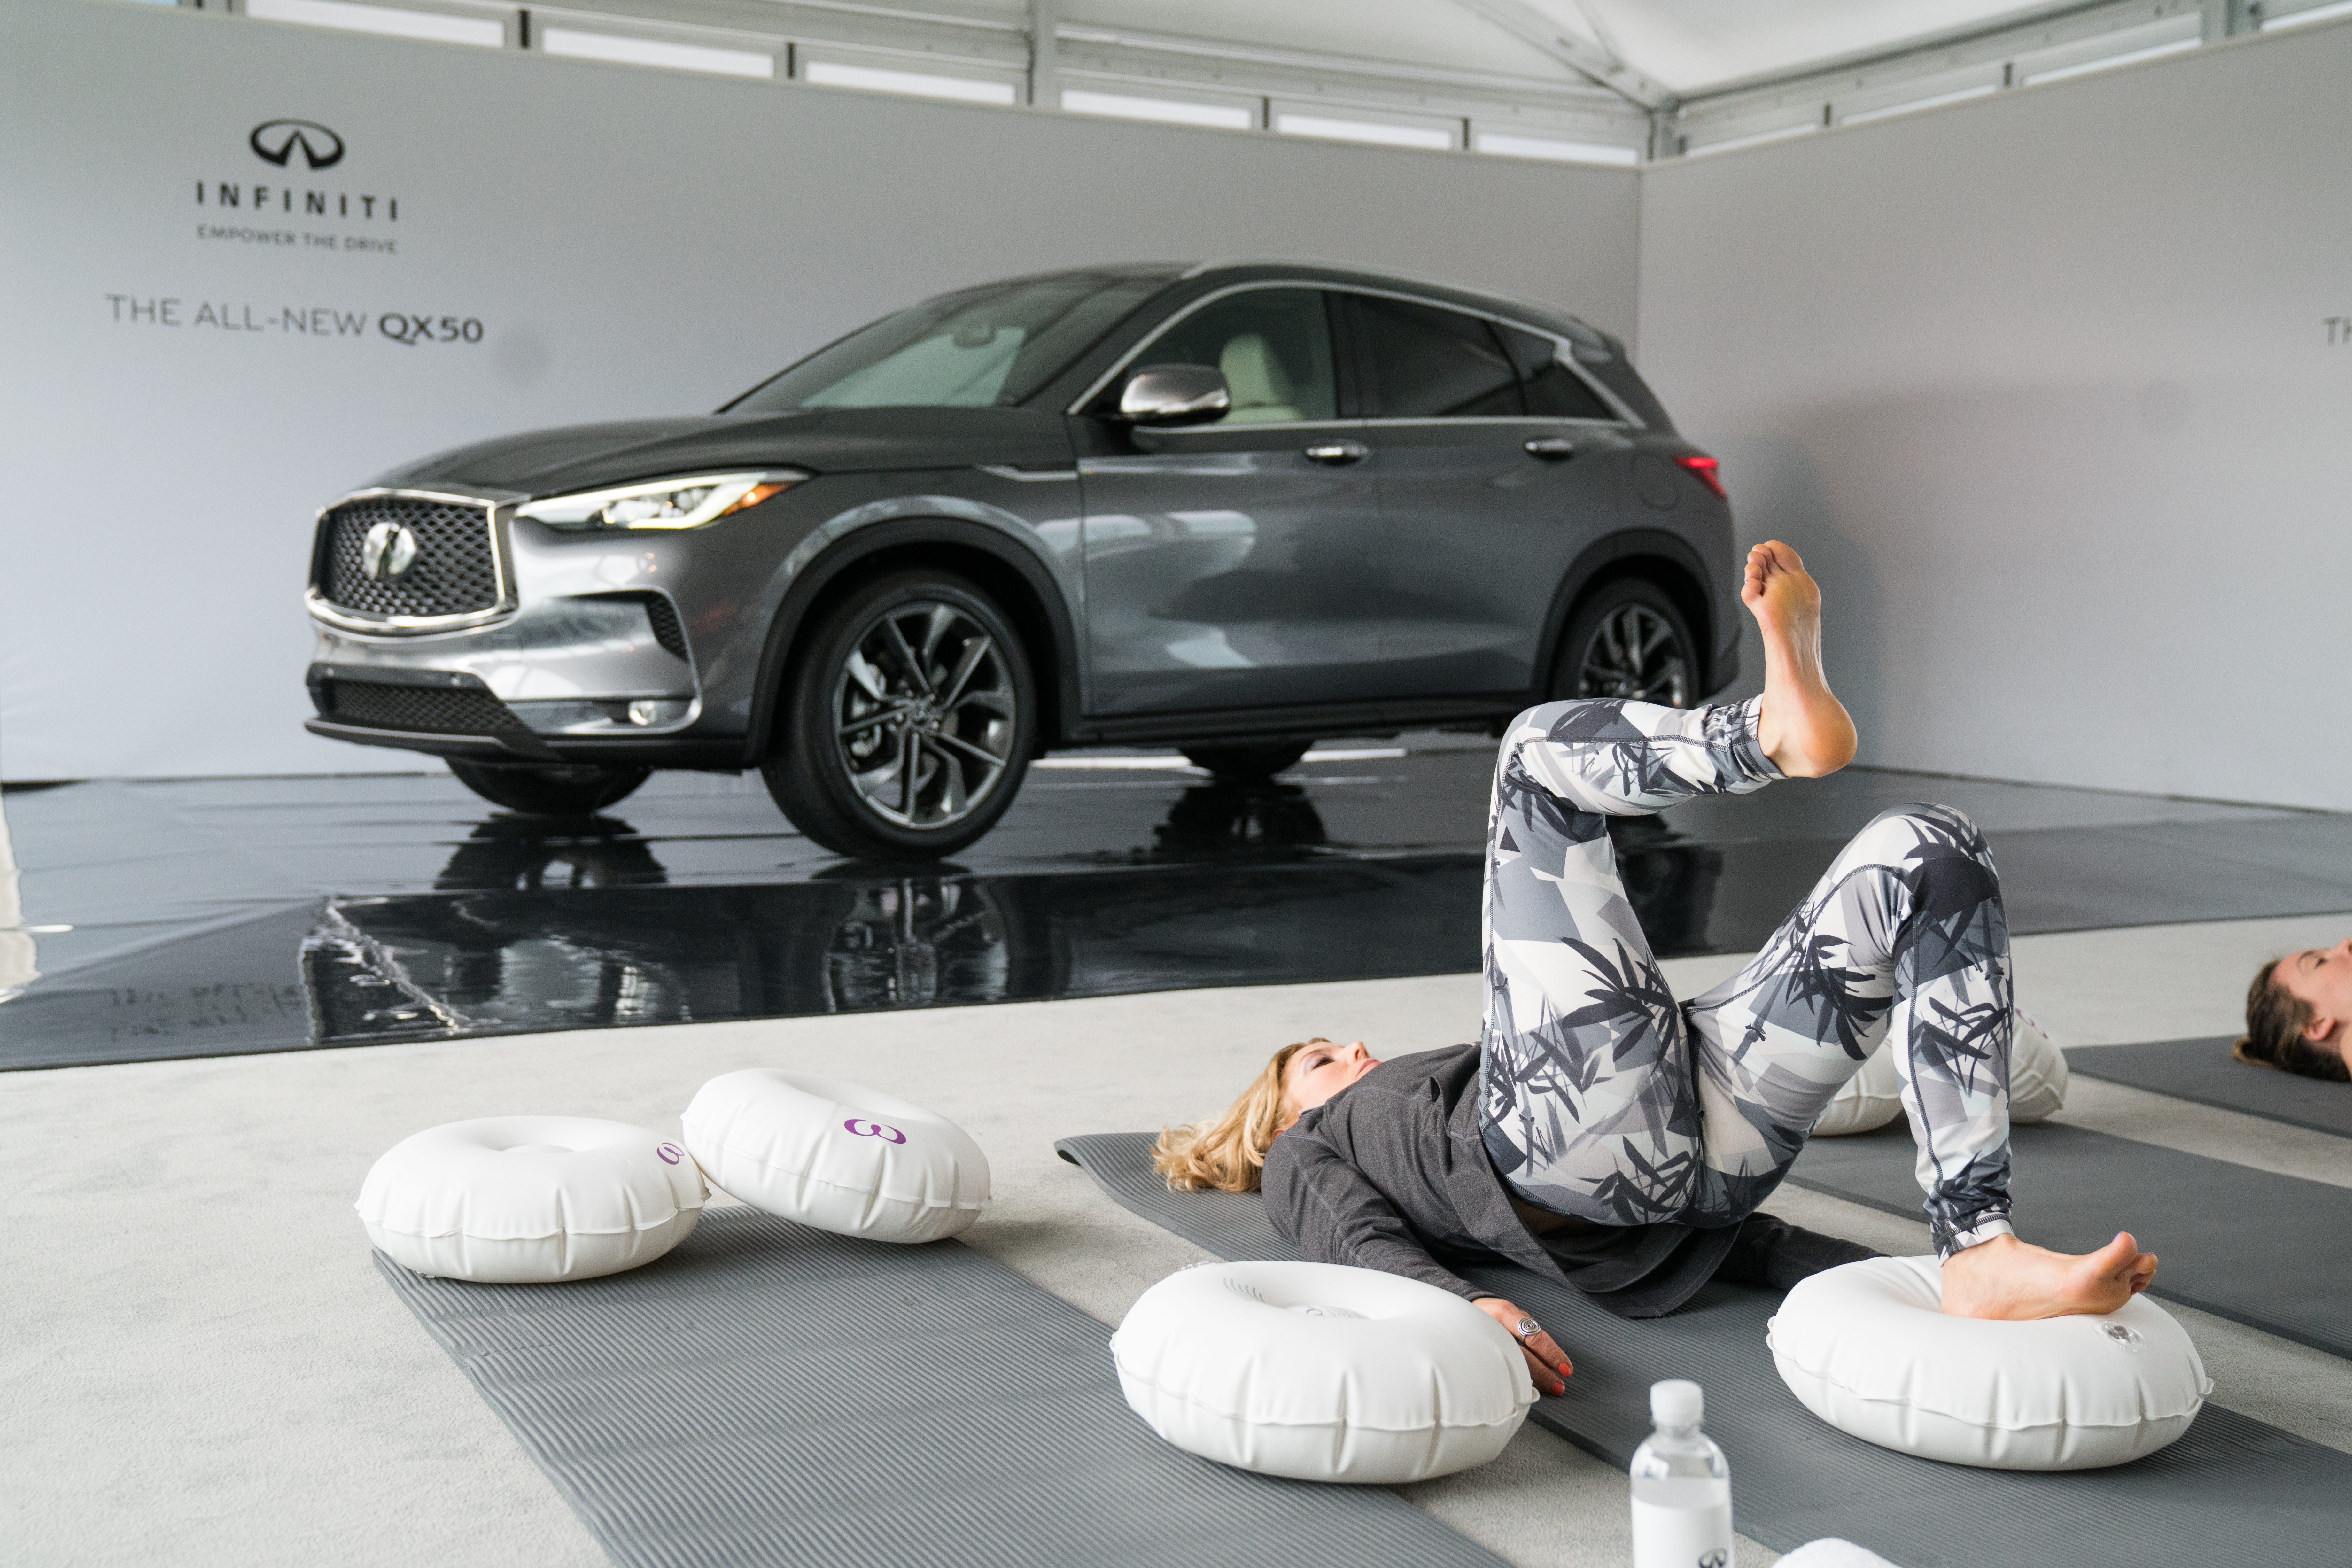 The Ultimate Luxury Experience For Mind, Body and Soul With The Infiniti QX50